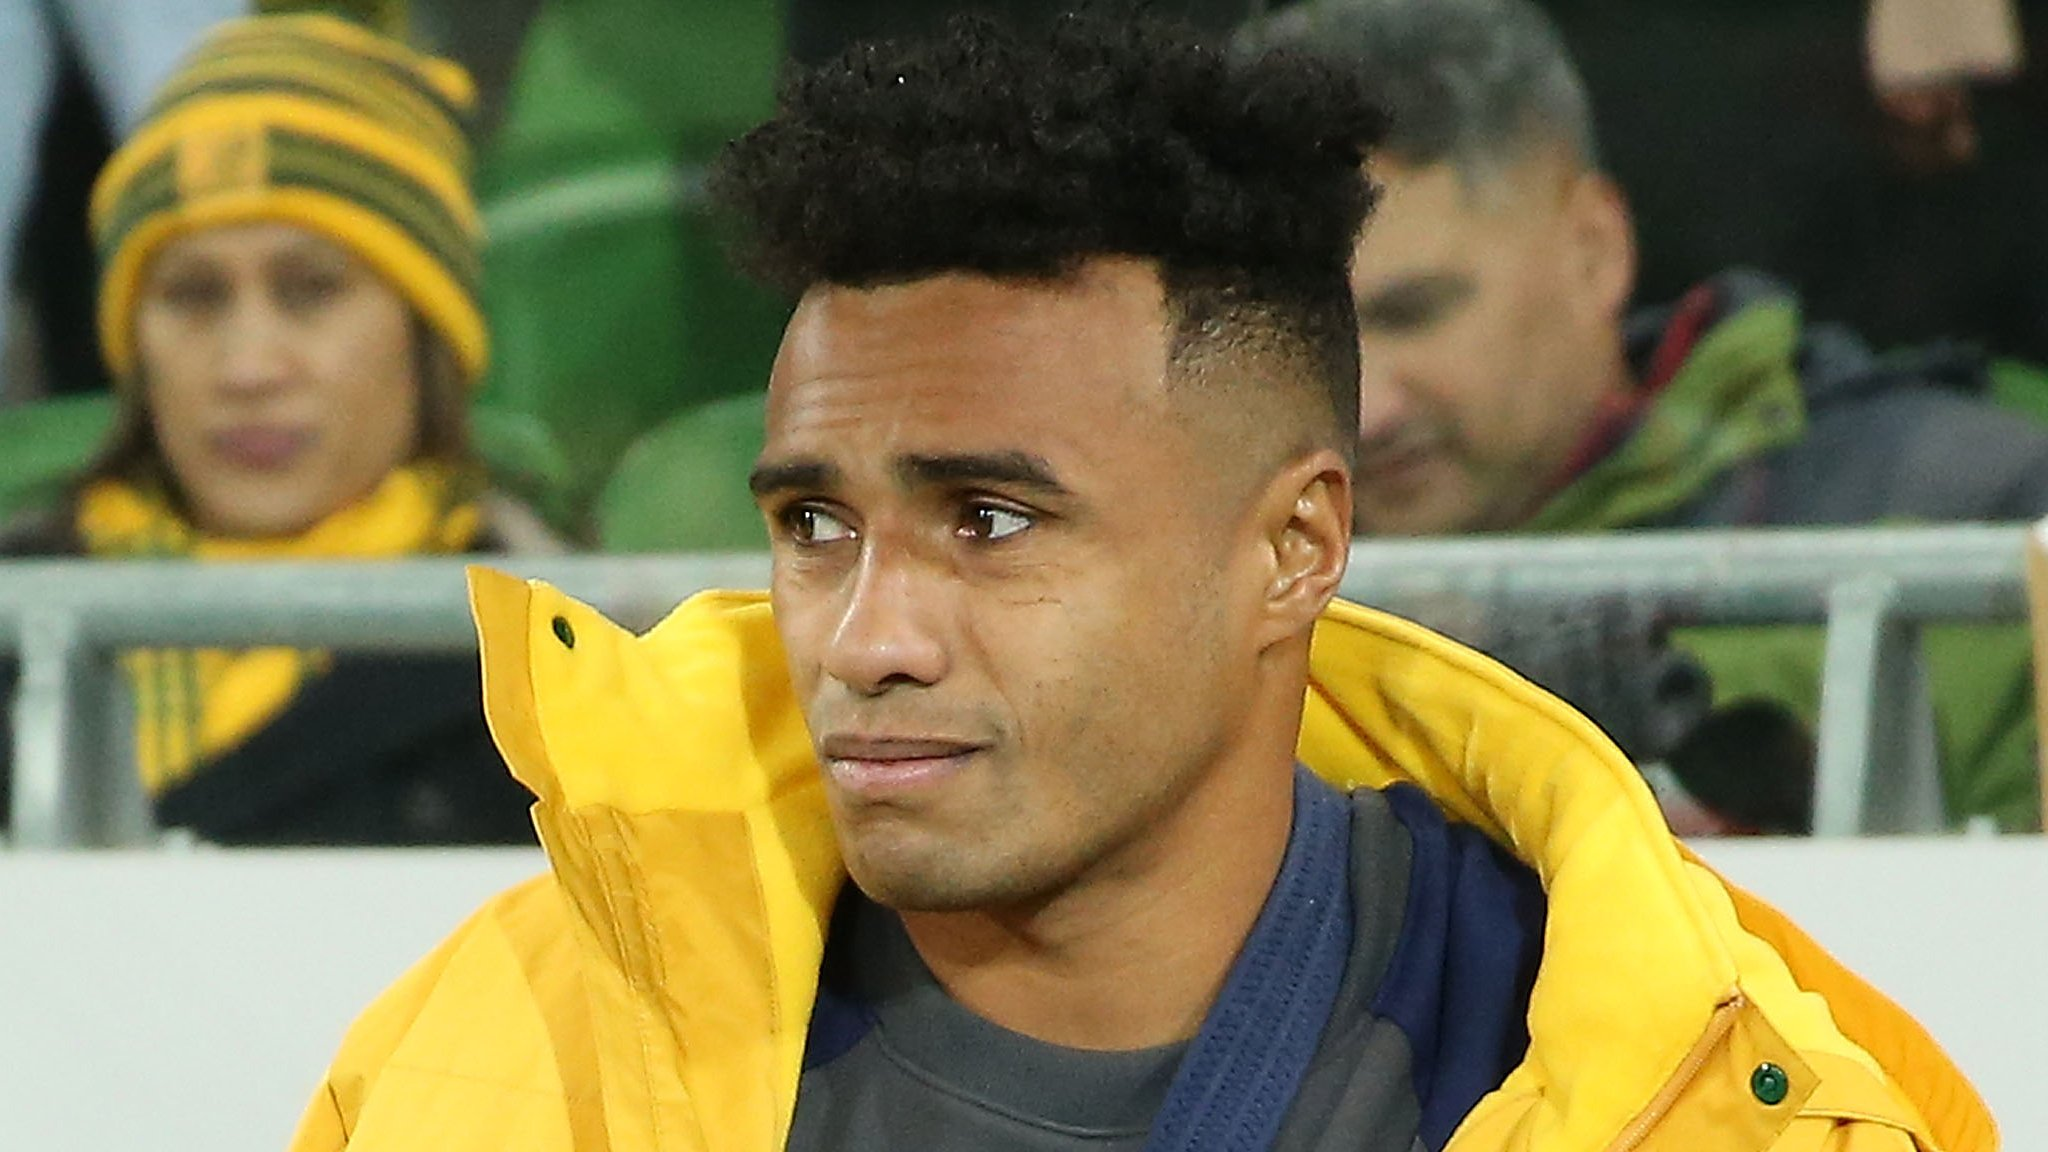 Healy could face disciplinary action for Genia injury